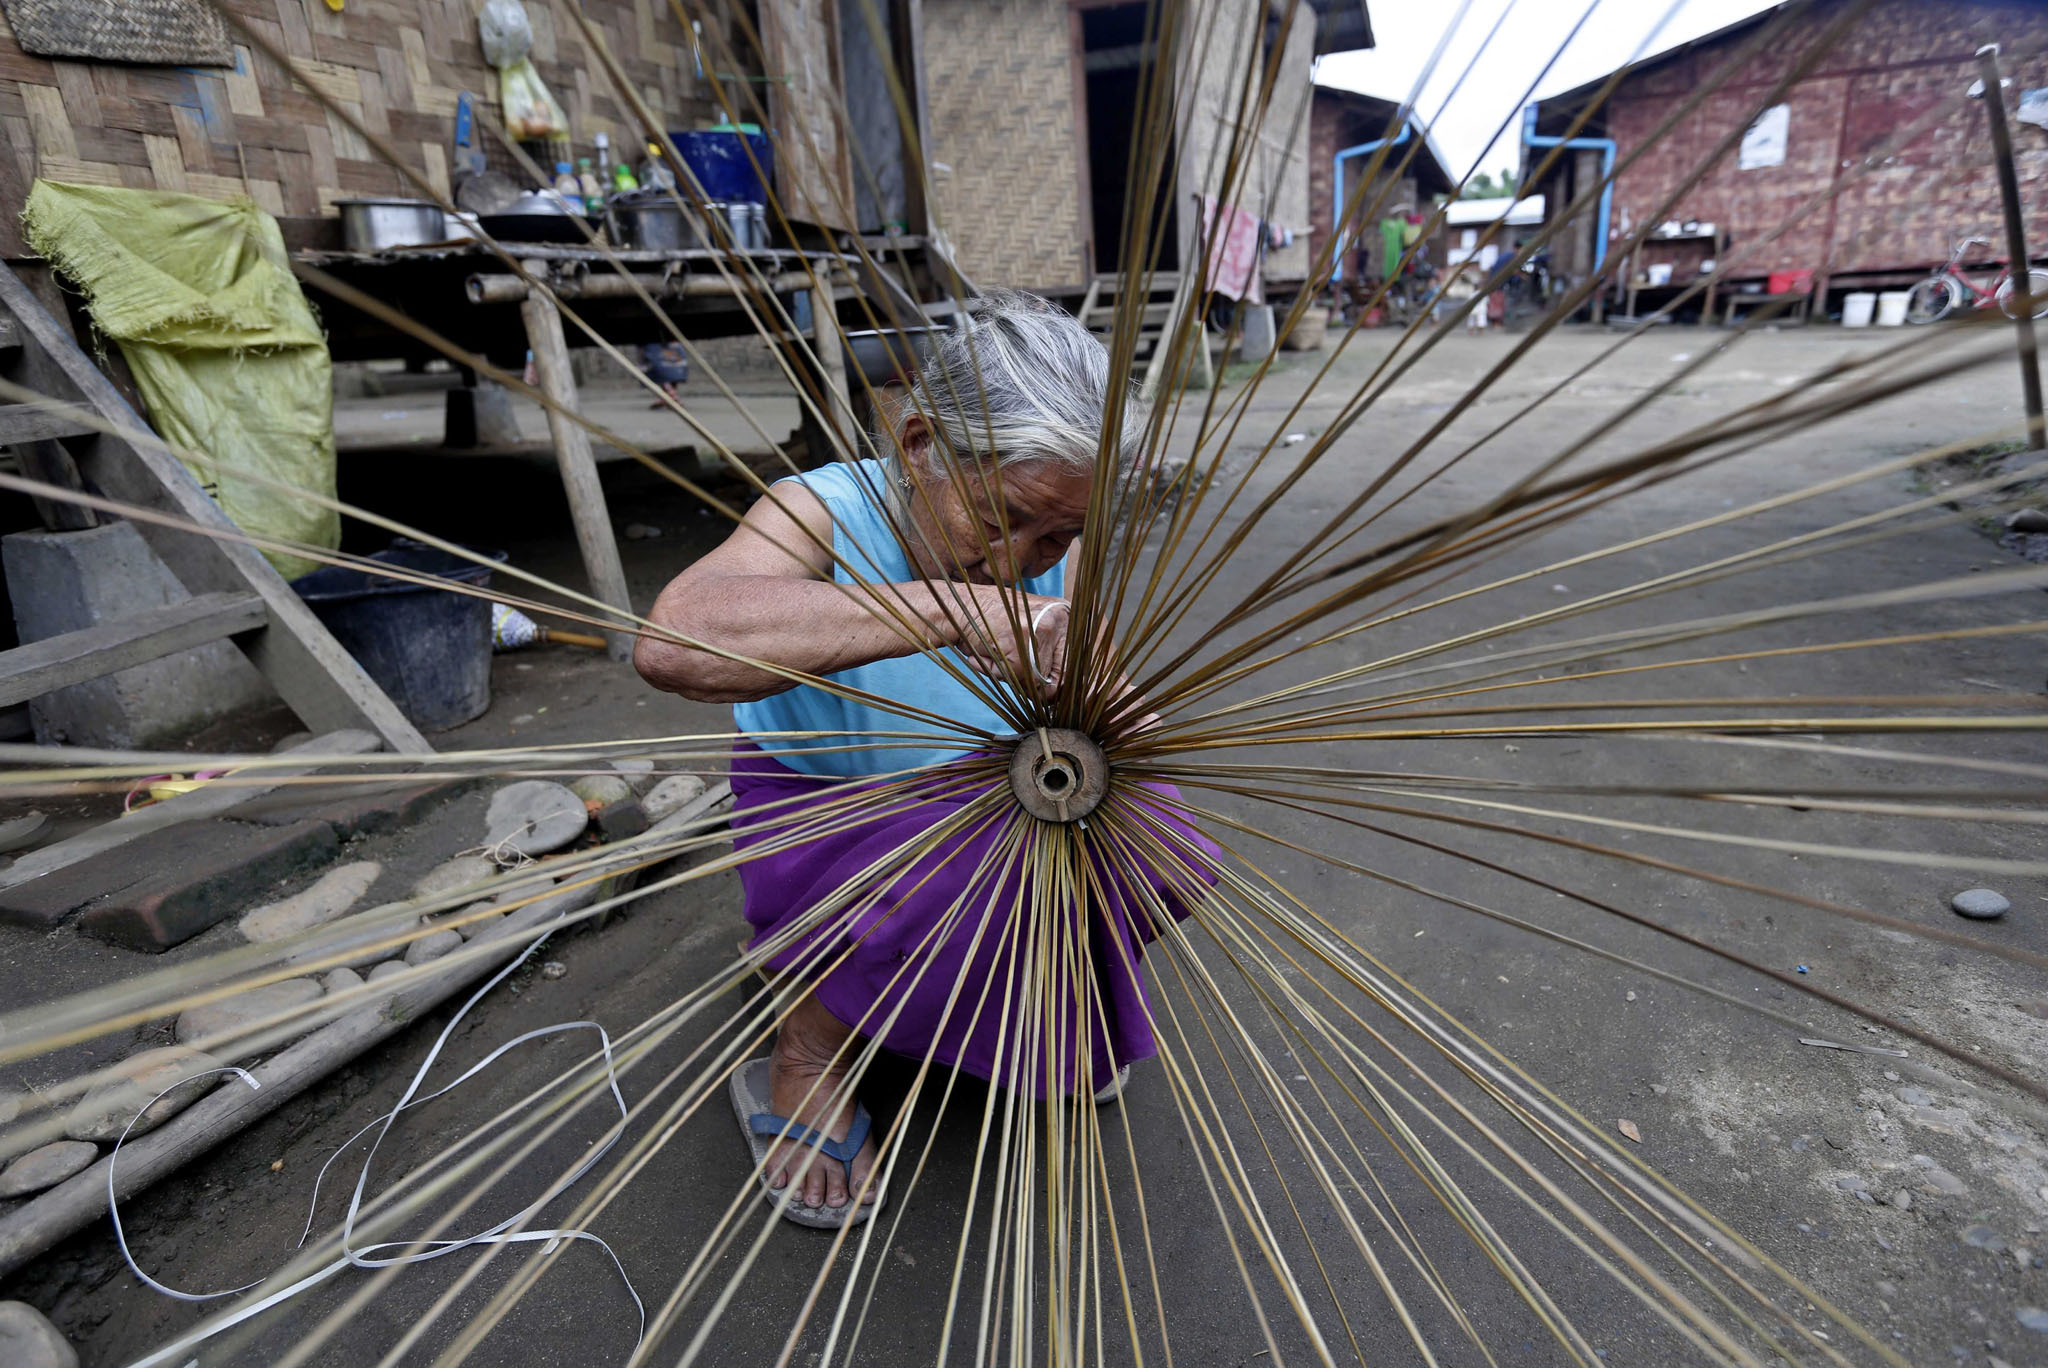 An elderly Kachin refugee woman maiking a broom at the Janmai Baptist camp, Myitkyina, Kachin State. Thousands of local people left their homes and took shelter in refugee camps to escape the ongoing battles between the Myanmar government's troops and the Kachin Independence Army (KIA).